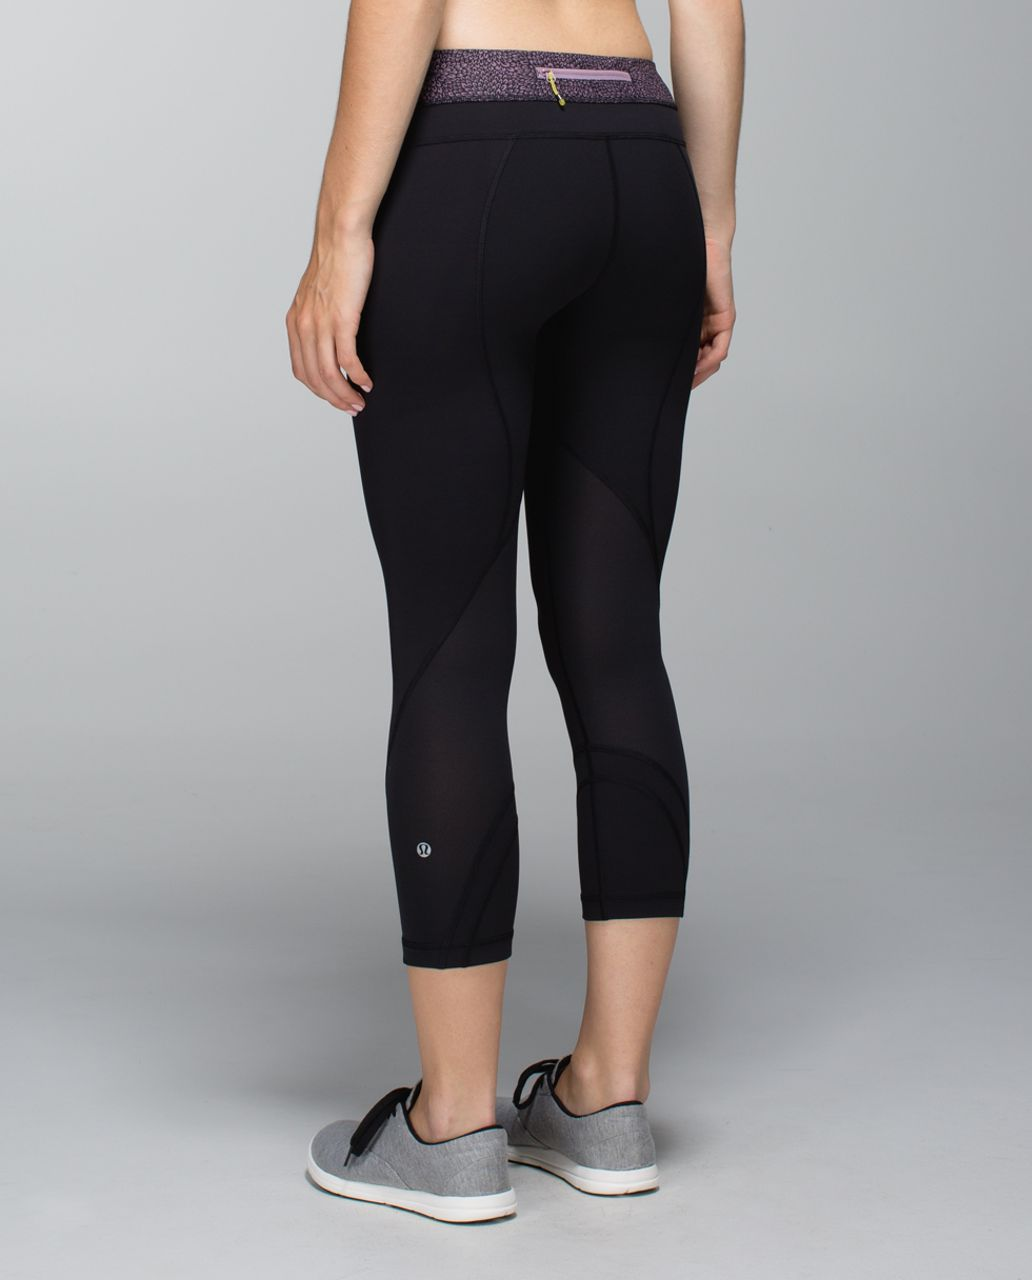 Lululemon Run:  Inspire Crop II - Black / Plush Petal Deep Coal Purple Fog